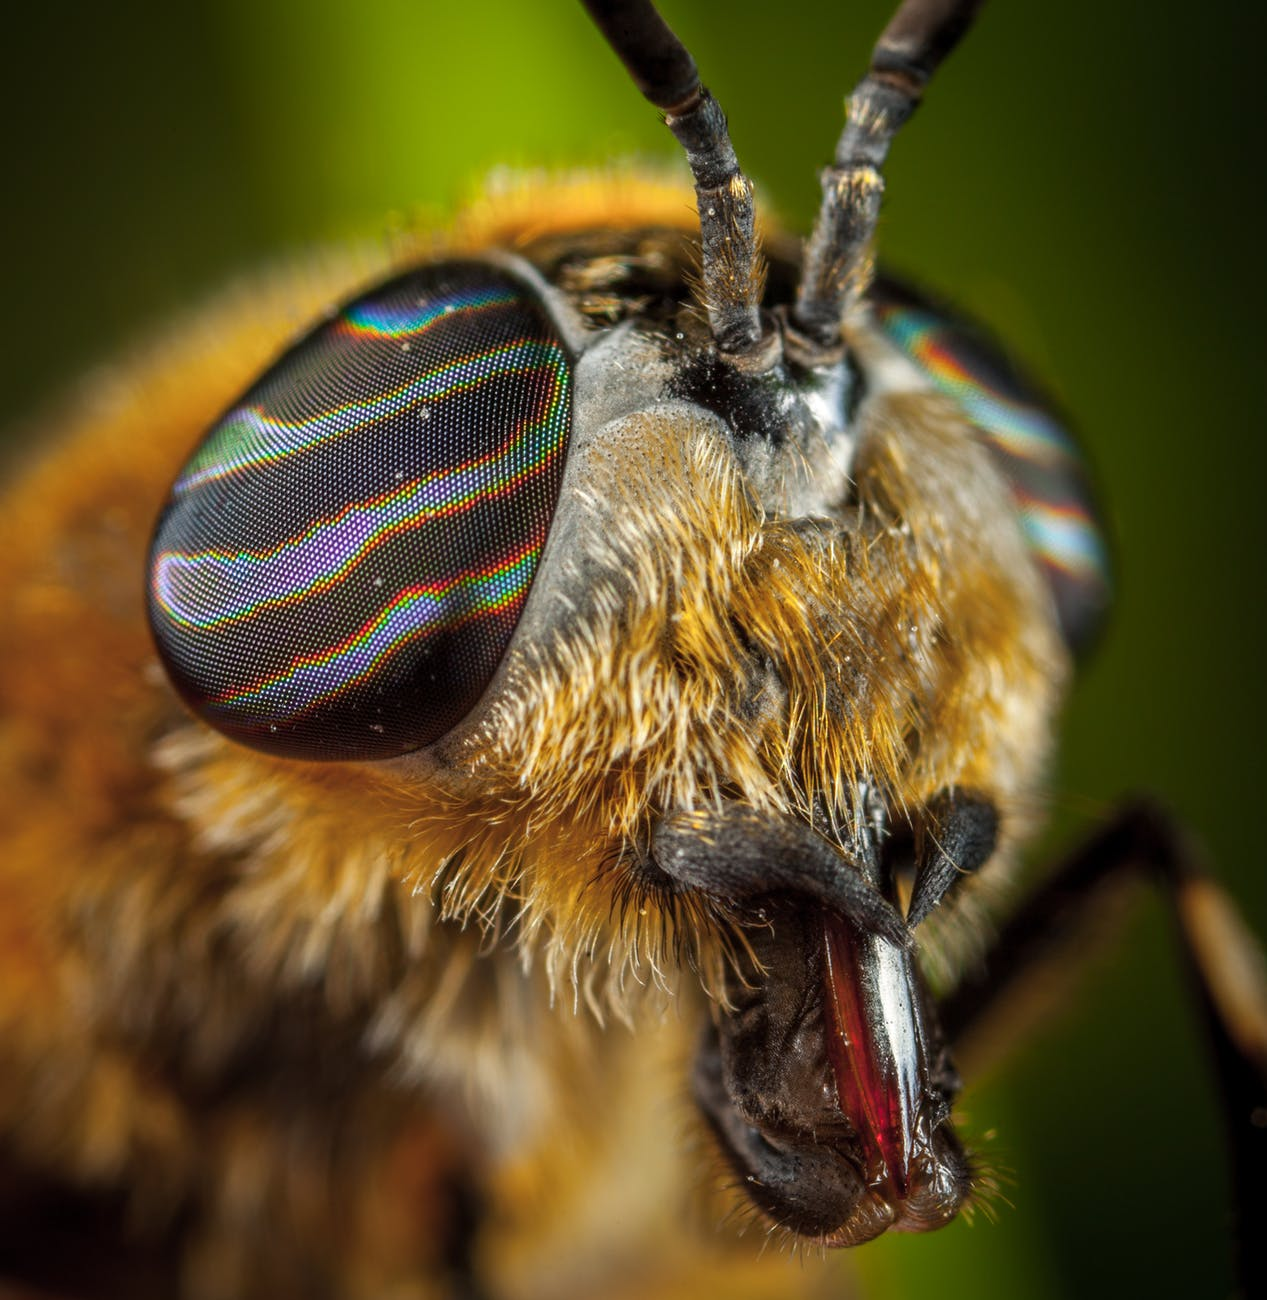 close up photo of insect